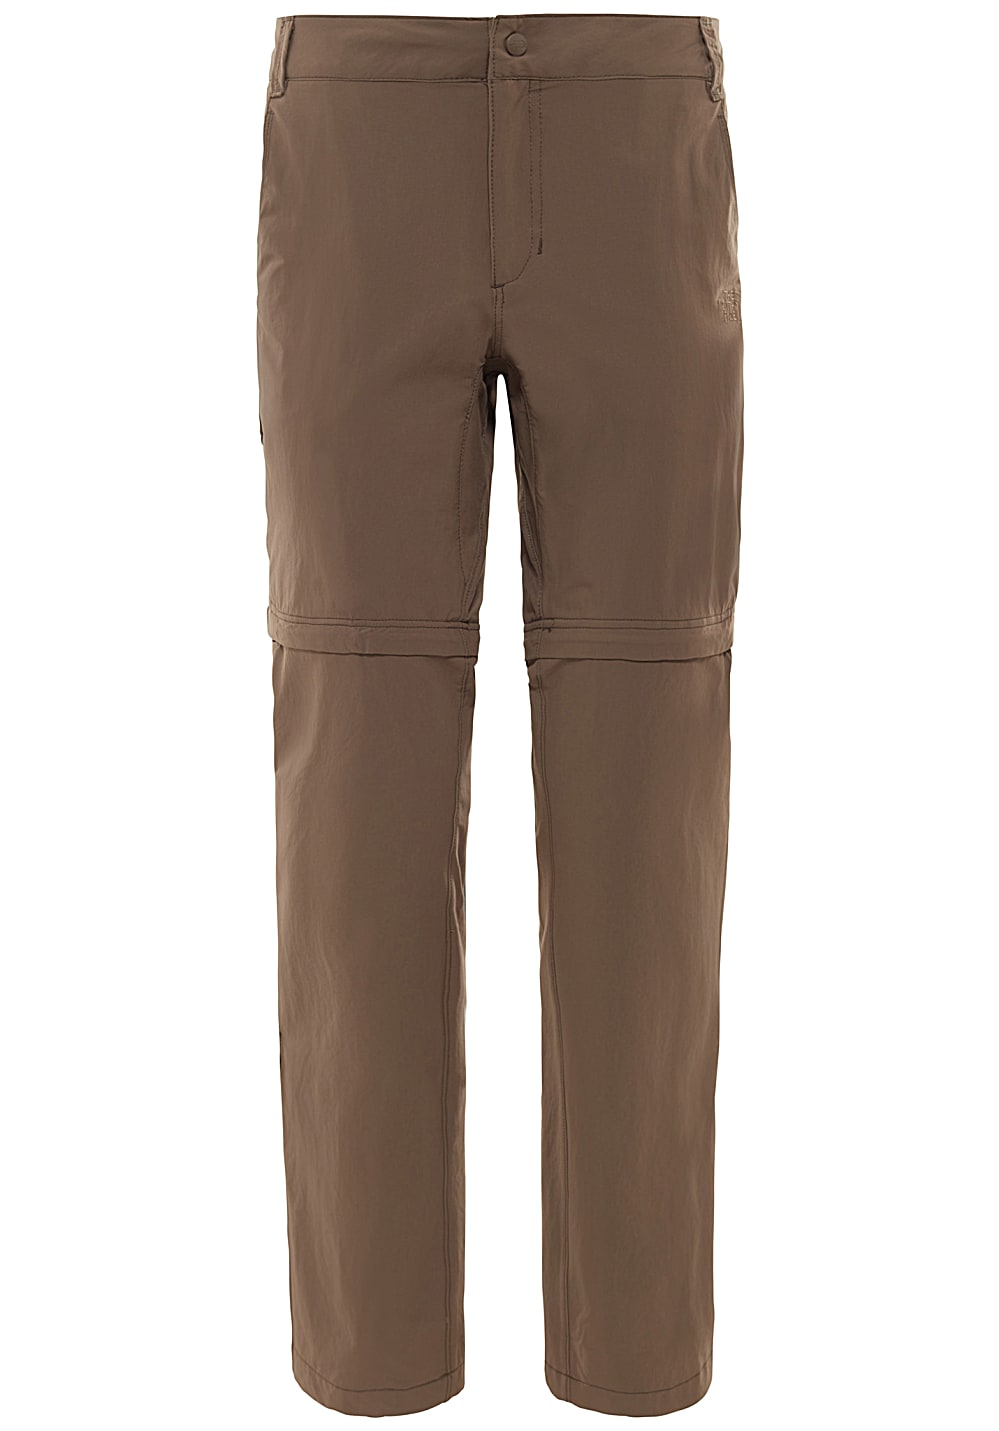 THE NORTH FACE Exploration Convertible - Outdoorhose für Damen - Braun